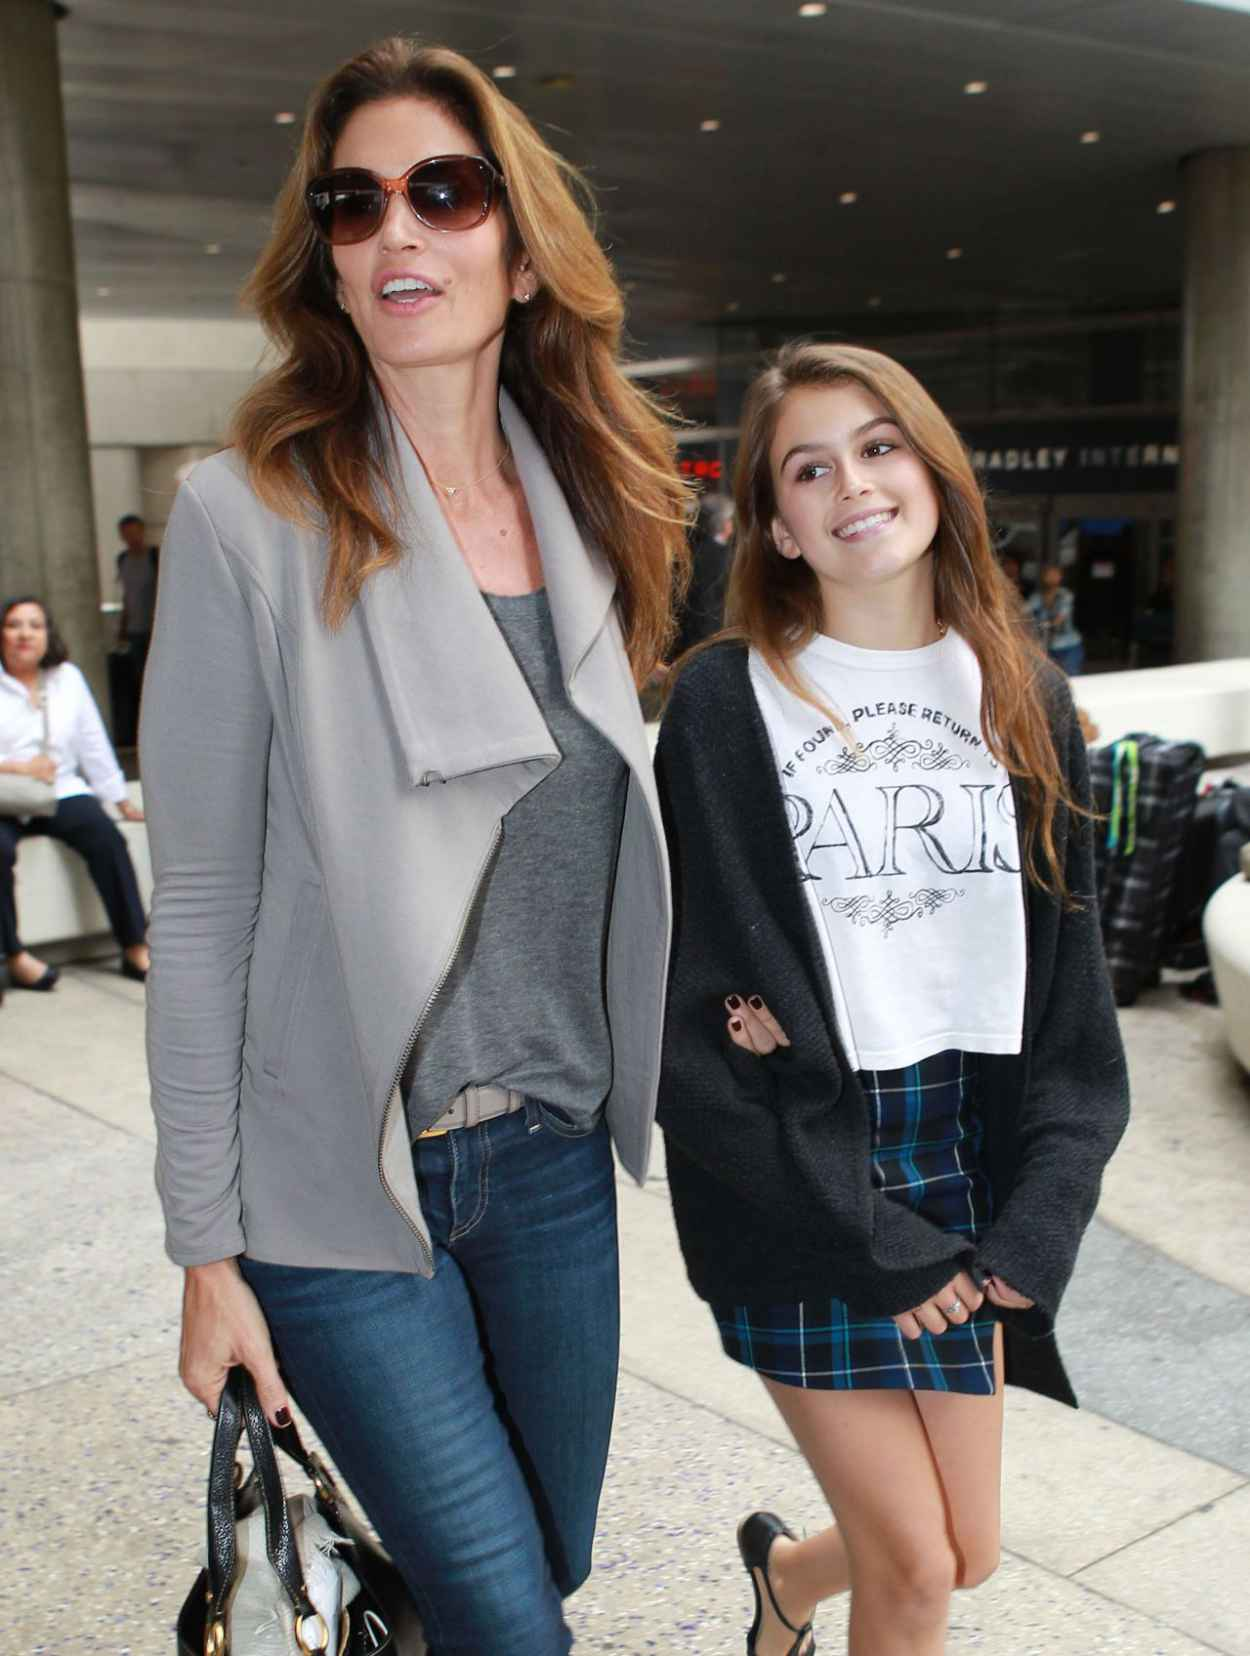 Cindy Crawford and Kaia Jordan Gerber at LAX Airport - May 2015-1